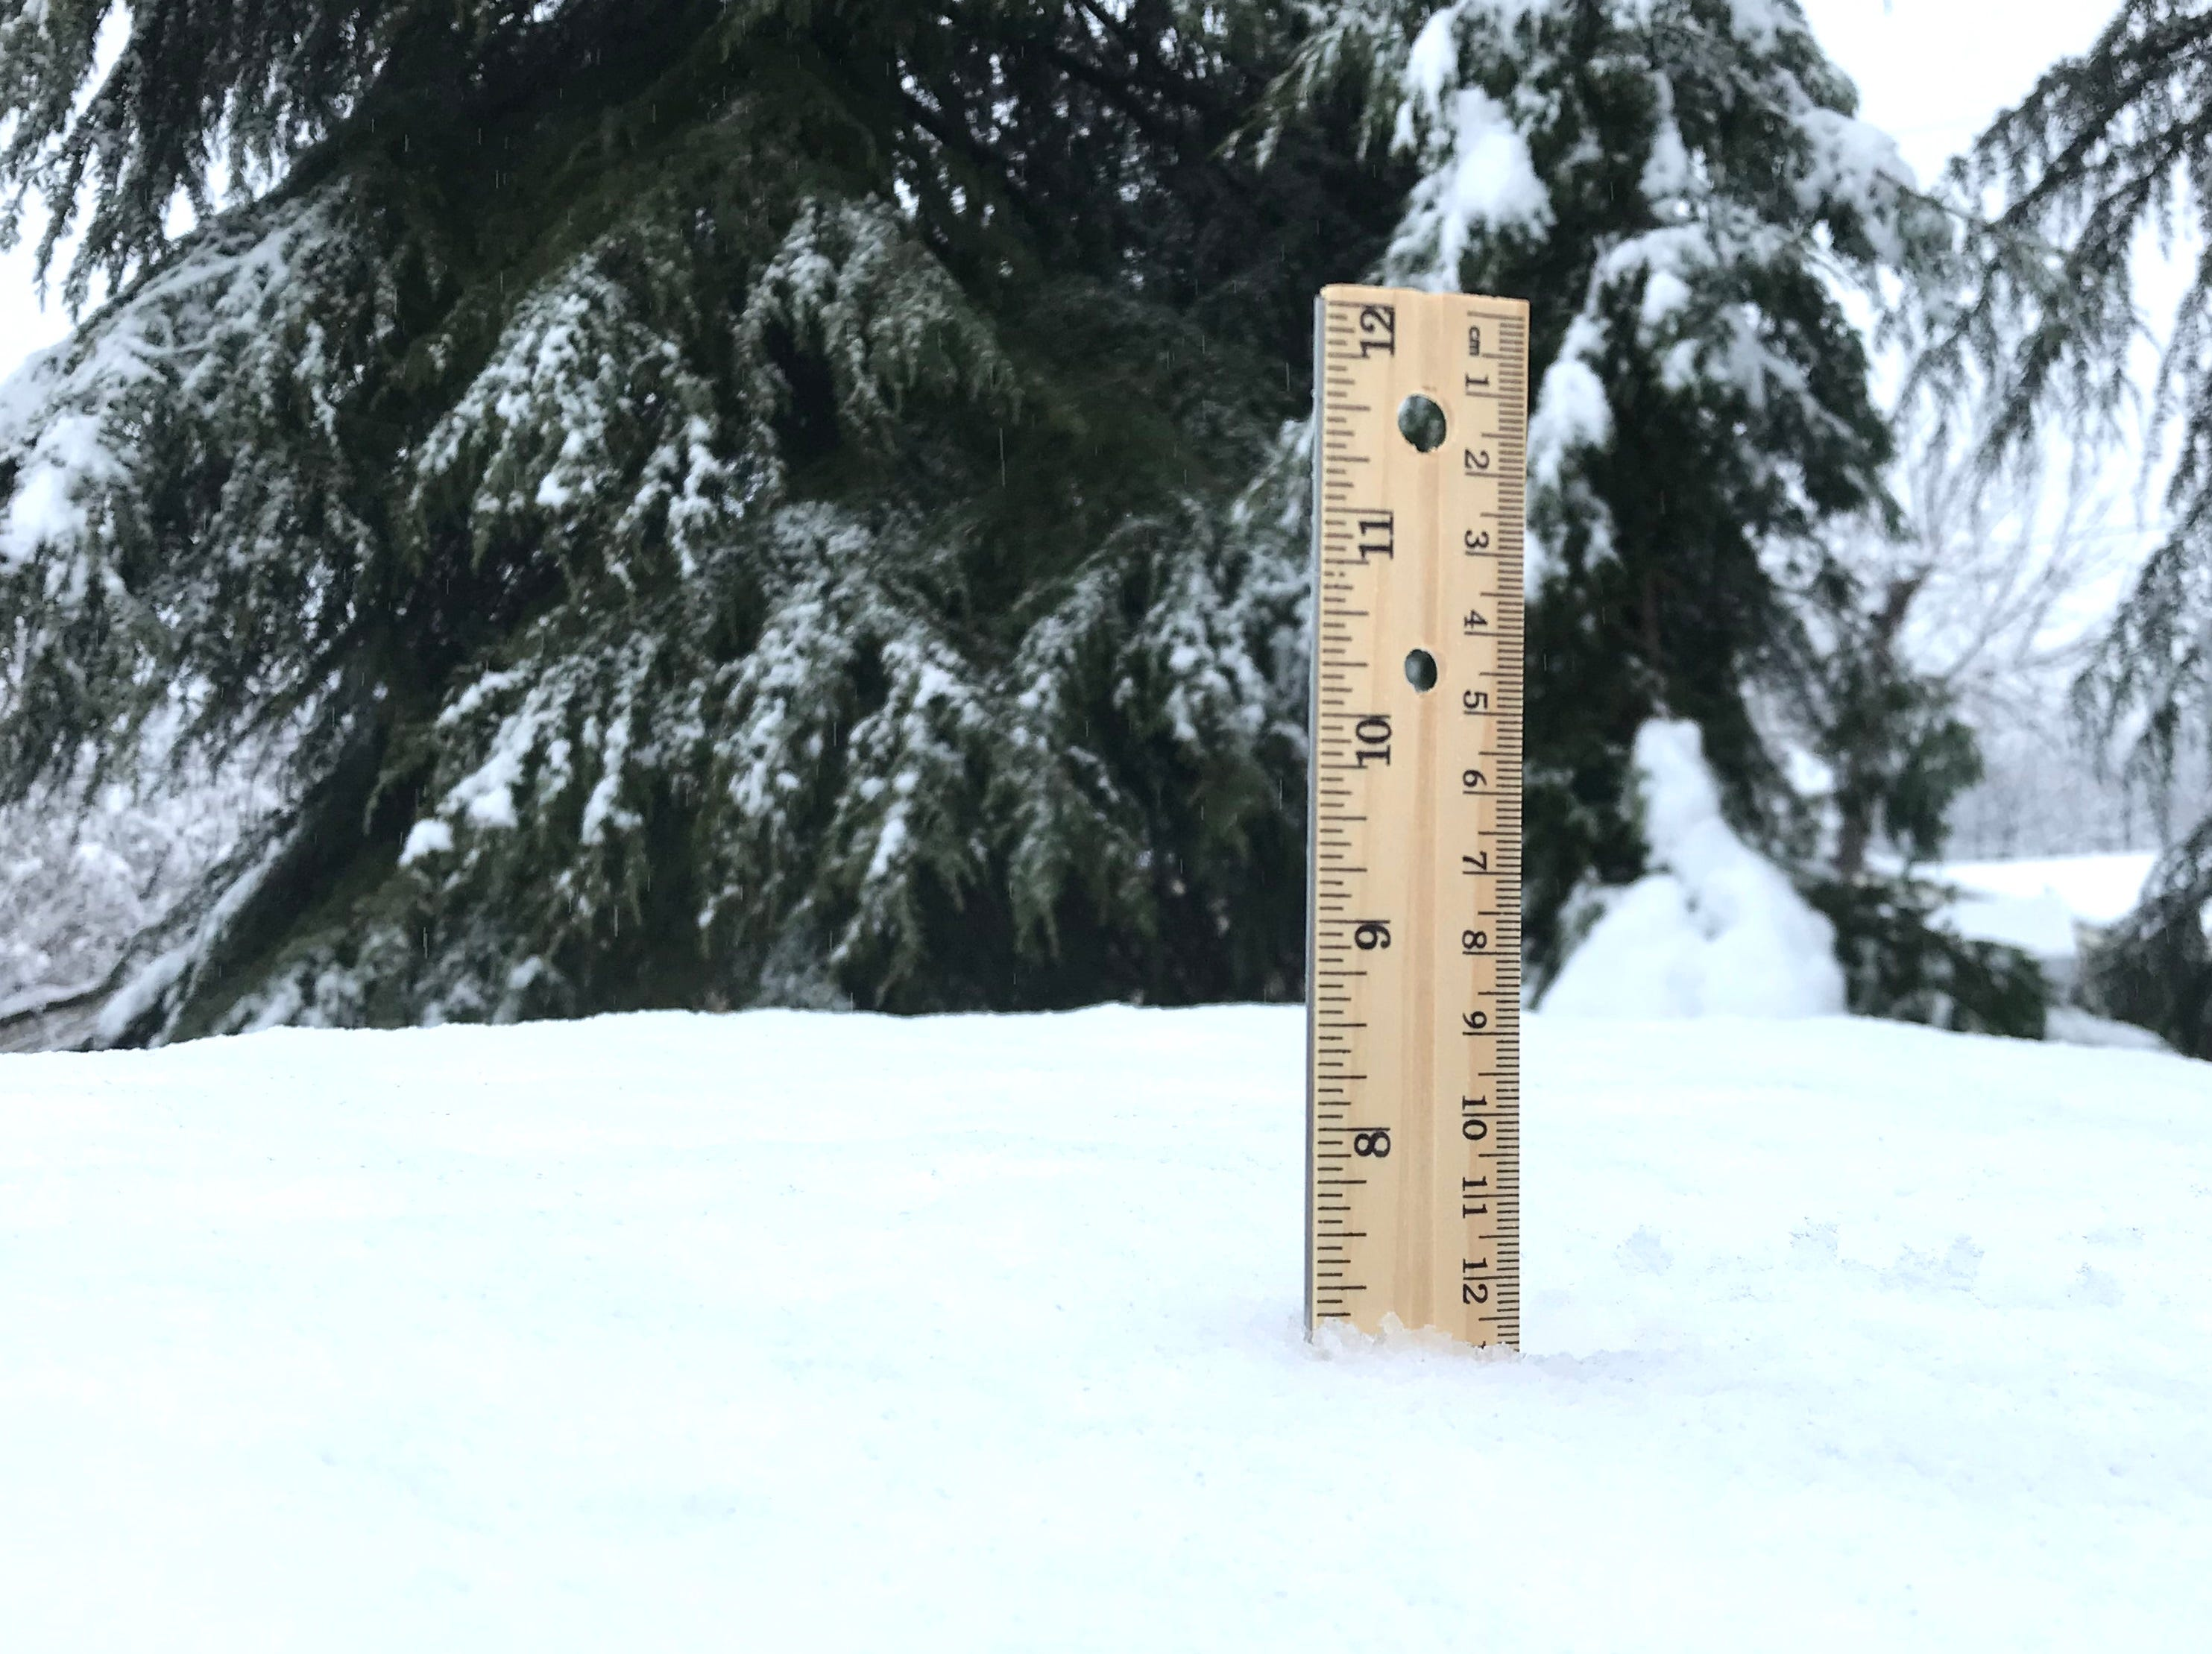 A ruler stuck into the snow in Anderson provided an unofficial measurement of 7 inches.